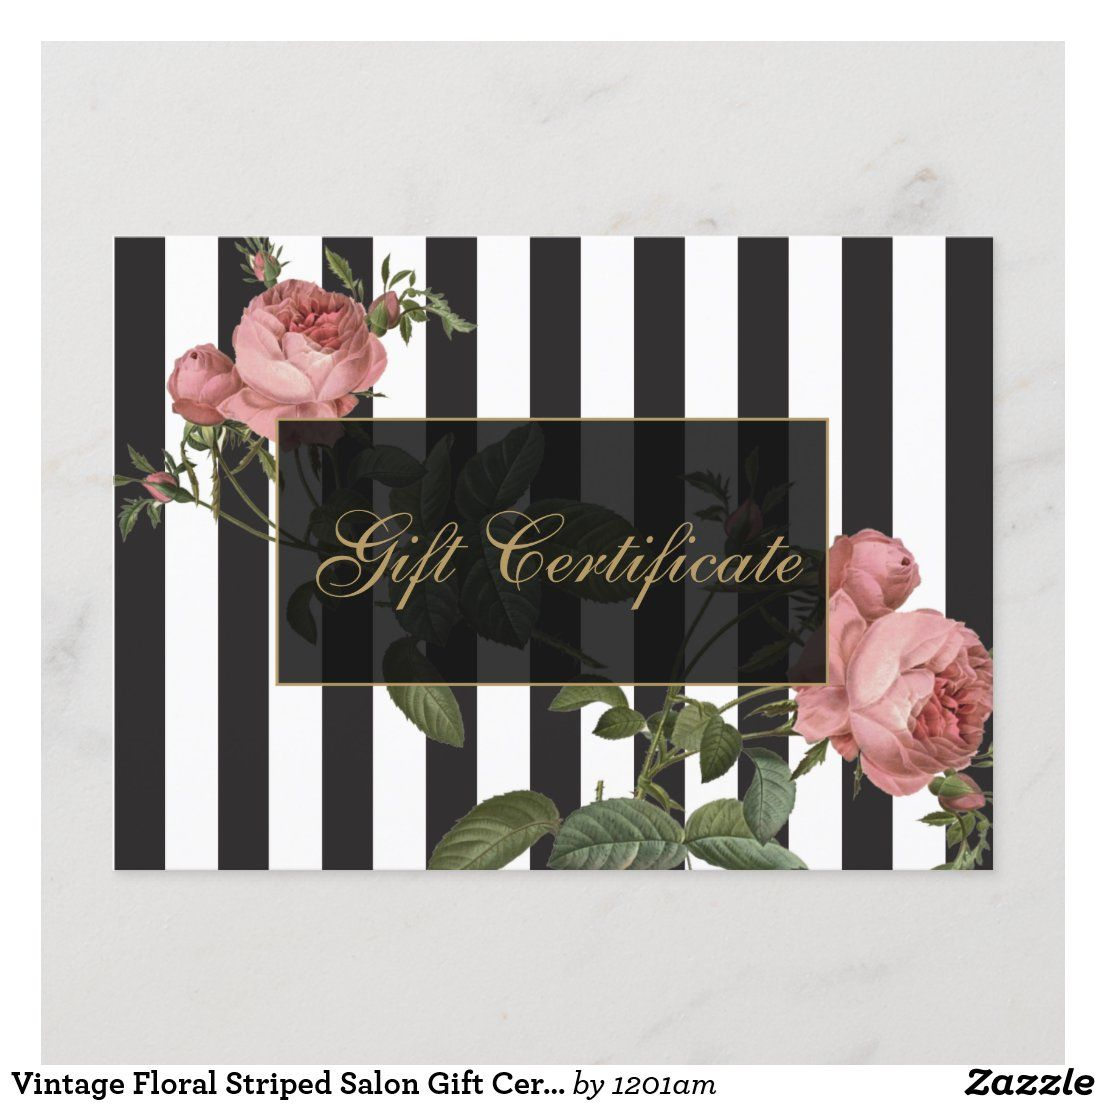 Vintage Floral Striped Salon Gift Certificate Zazzle Com Salon Gifts Gift Certificates Corporate Gifts